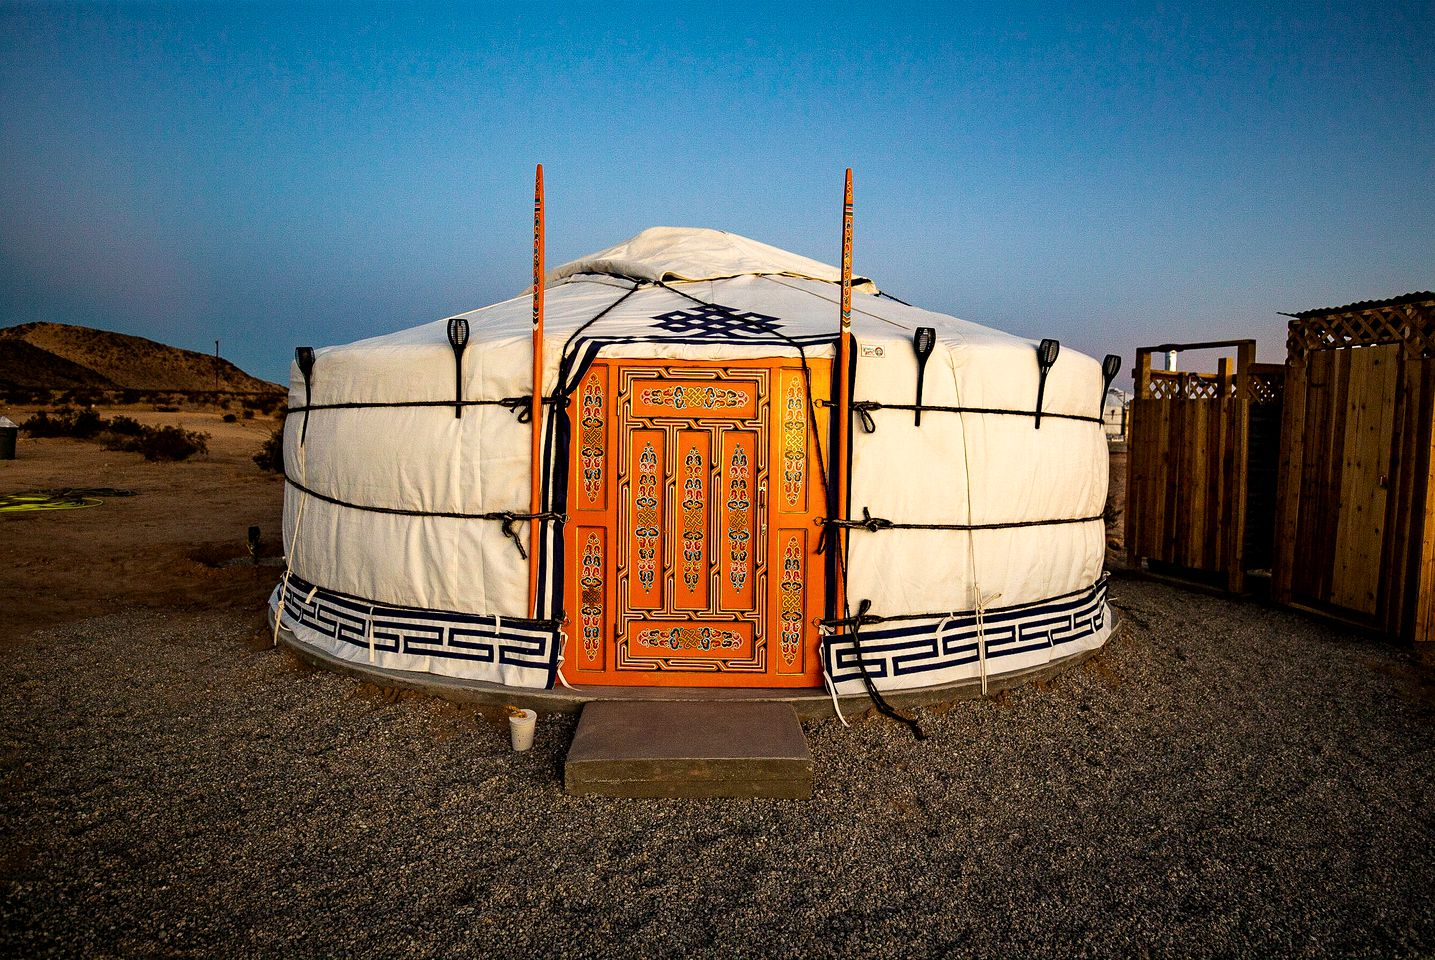 Yurts (Twentynine Palms, California, United States)